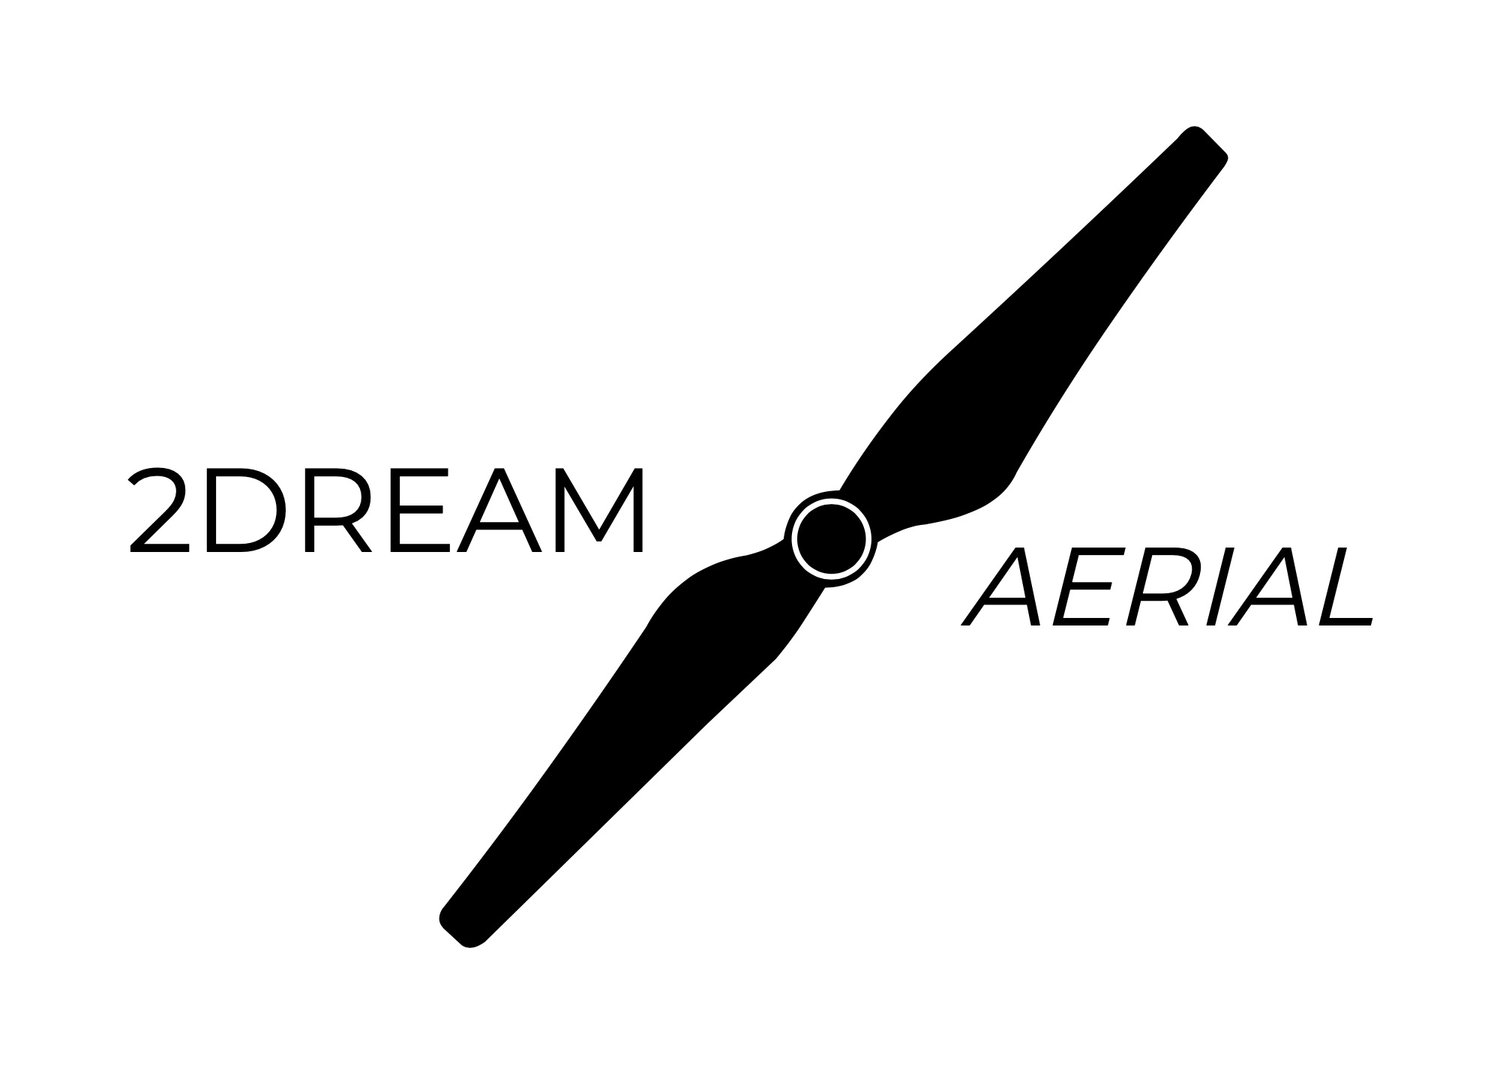 2DREAM MEDIA | INSURED, LICENSED, REGISTERED PROFESSIONAL AERIAL FILMMAKING IN THE MIDWEST